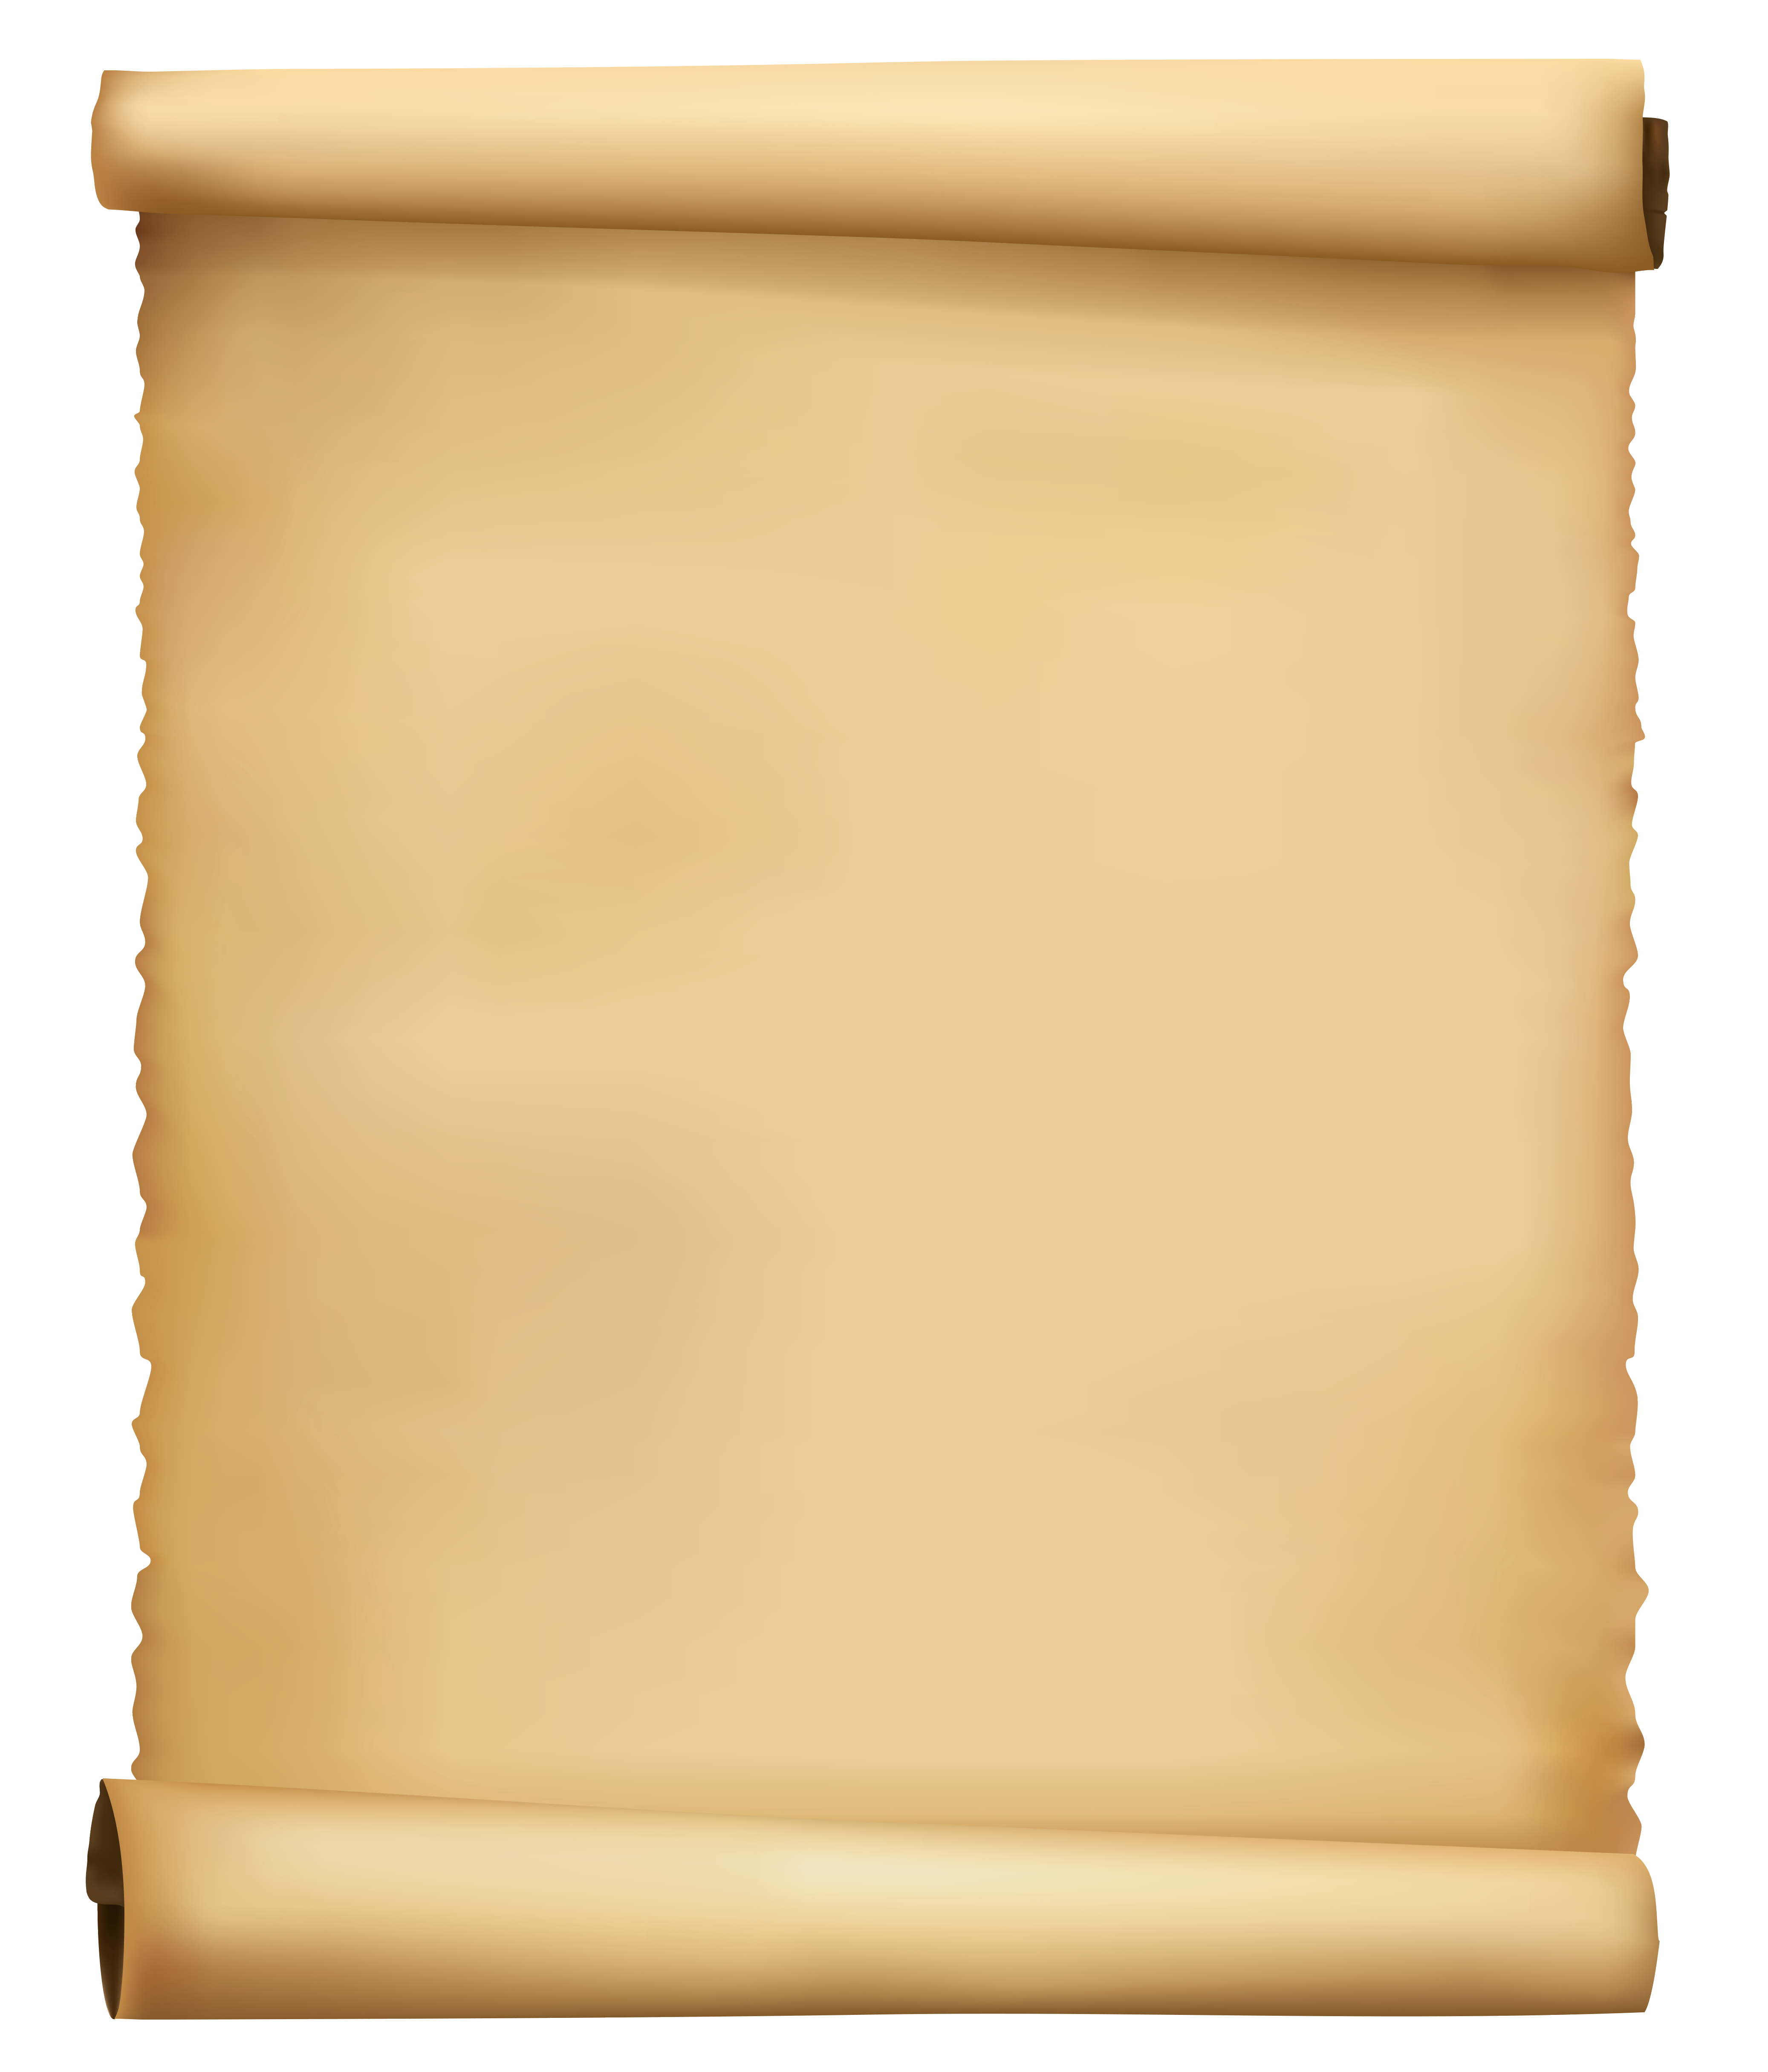 Letter paper png. Scrolled ancient clipart image